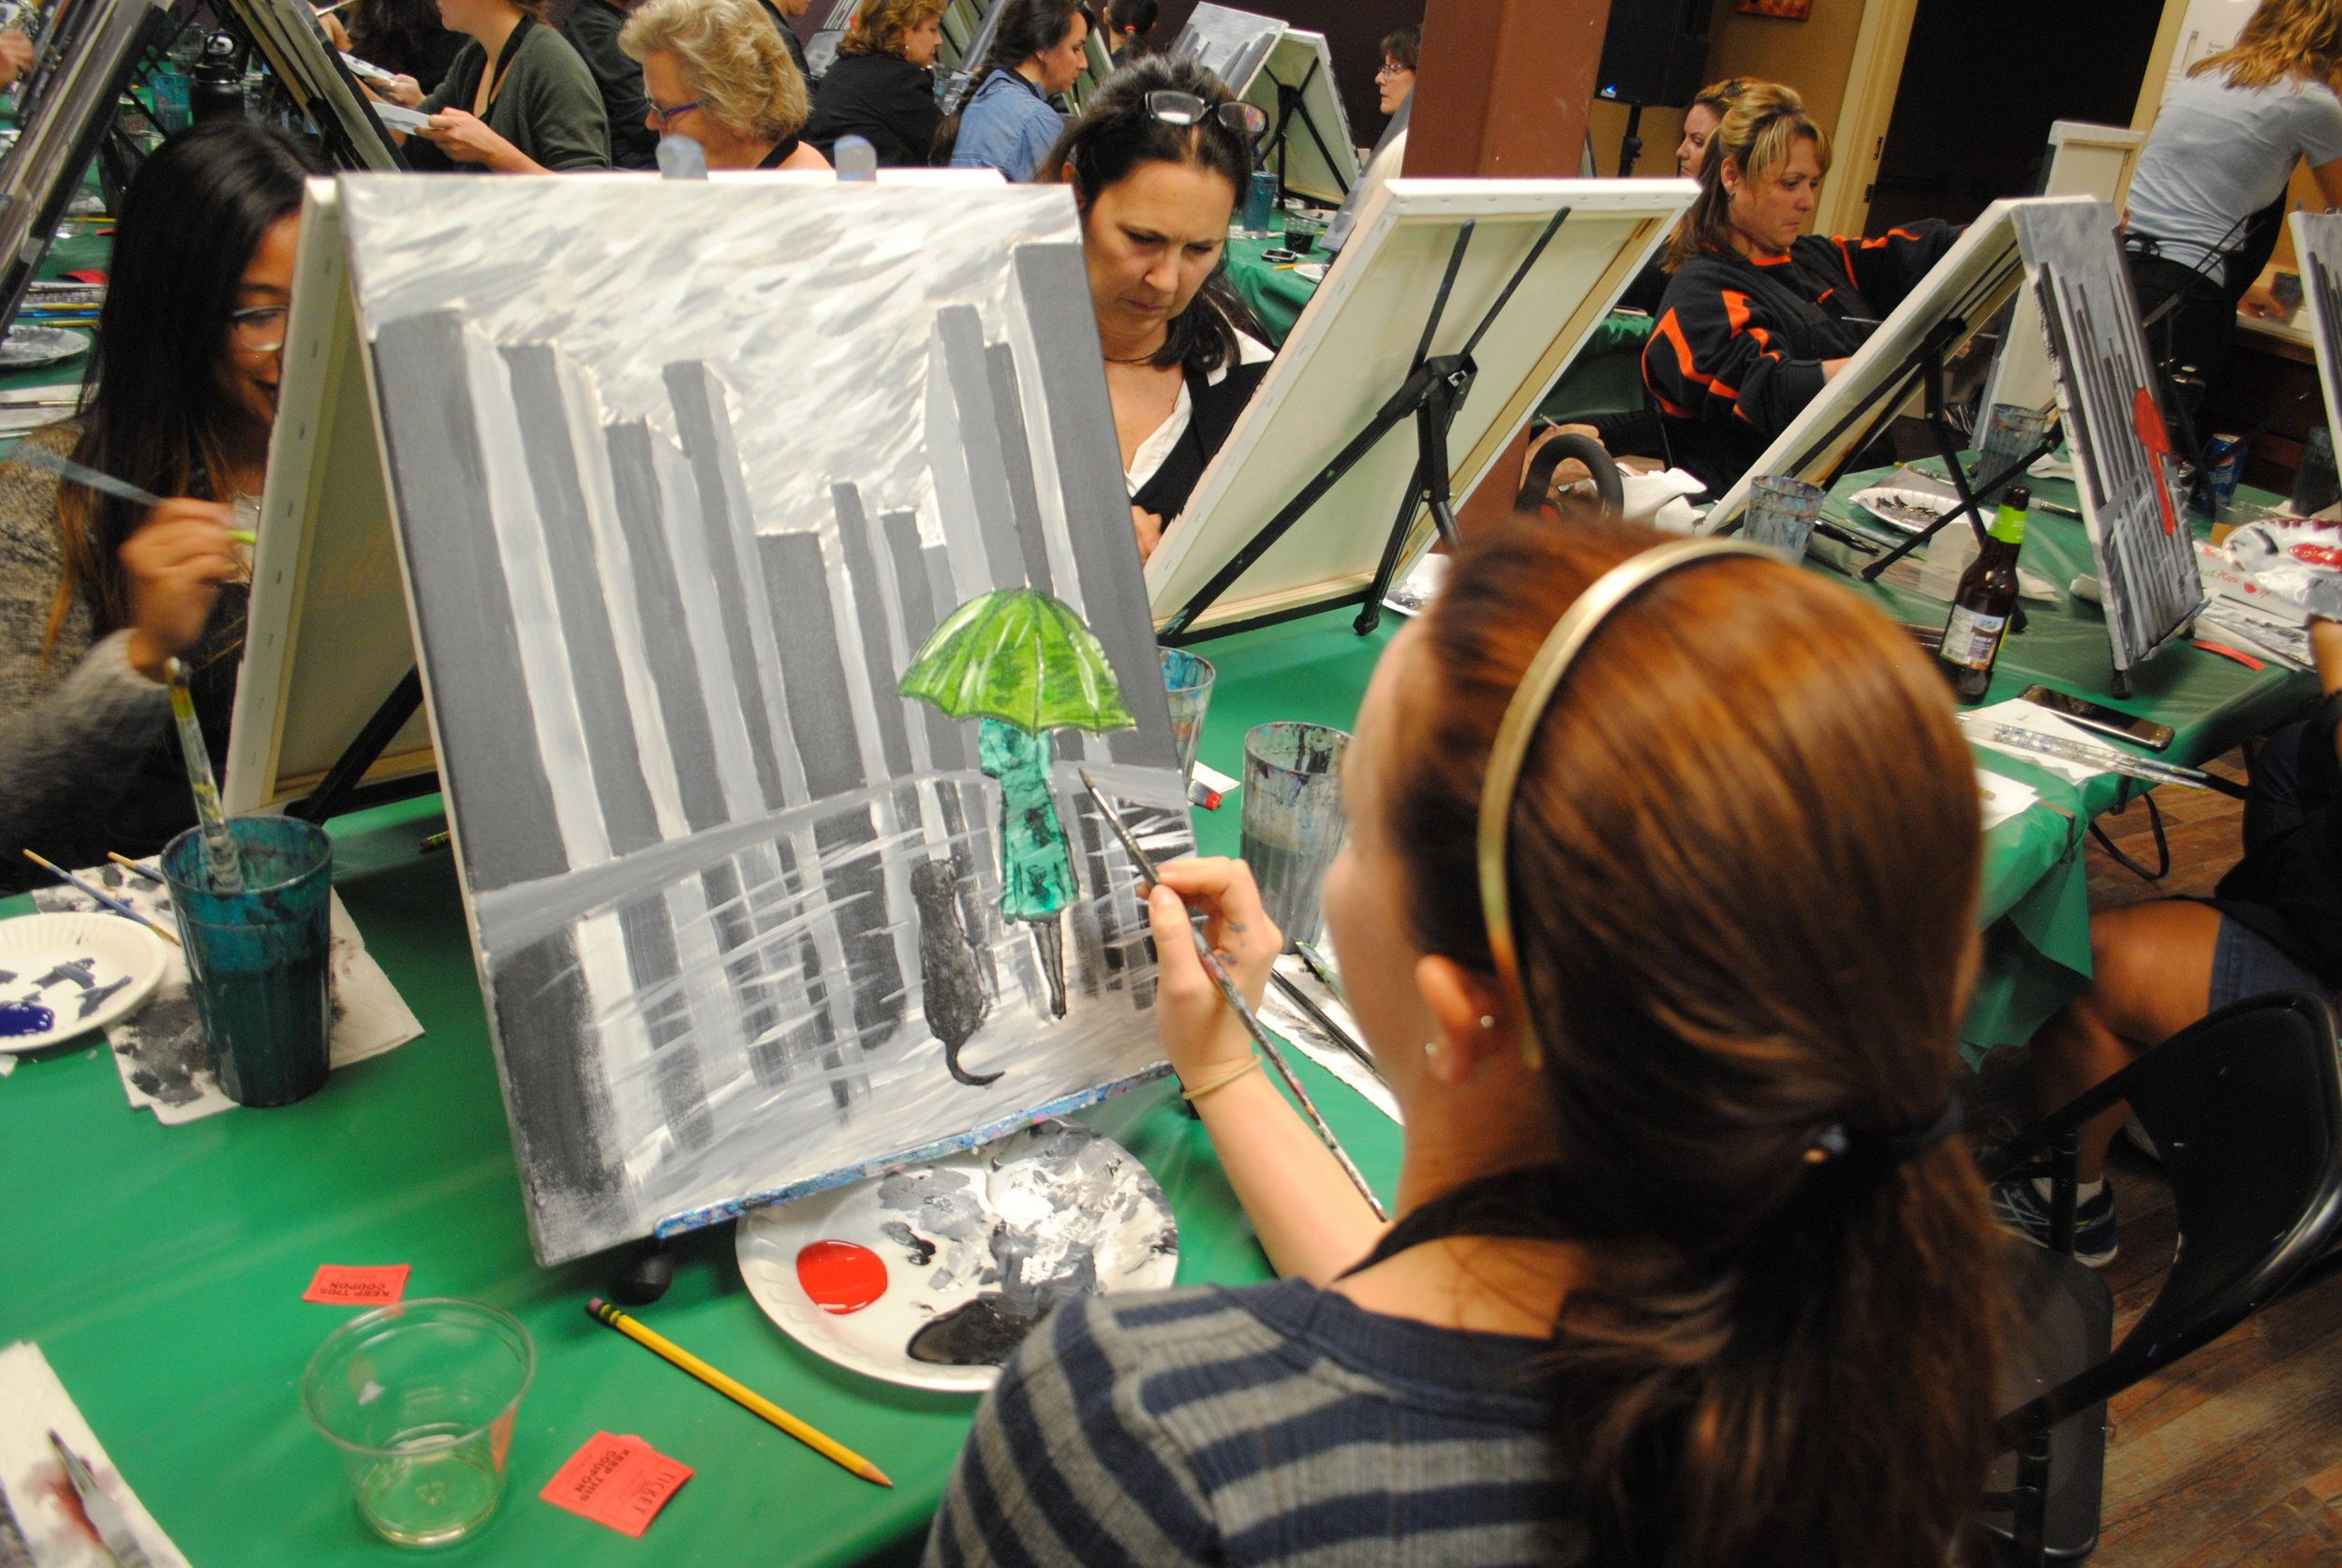 ART 4 JOY - Sip n' Paint - Central Point - What to do in Southern Oregon - Things to do - Events - Girls Night - Family - Kids (28).JPG